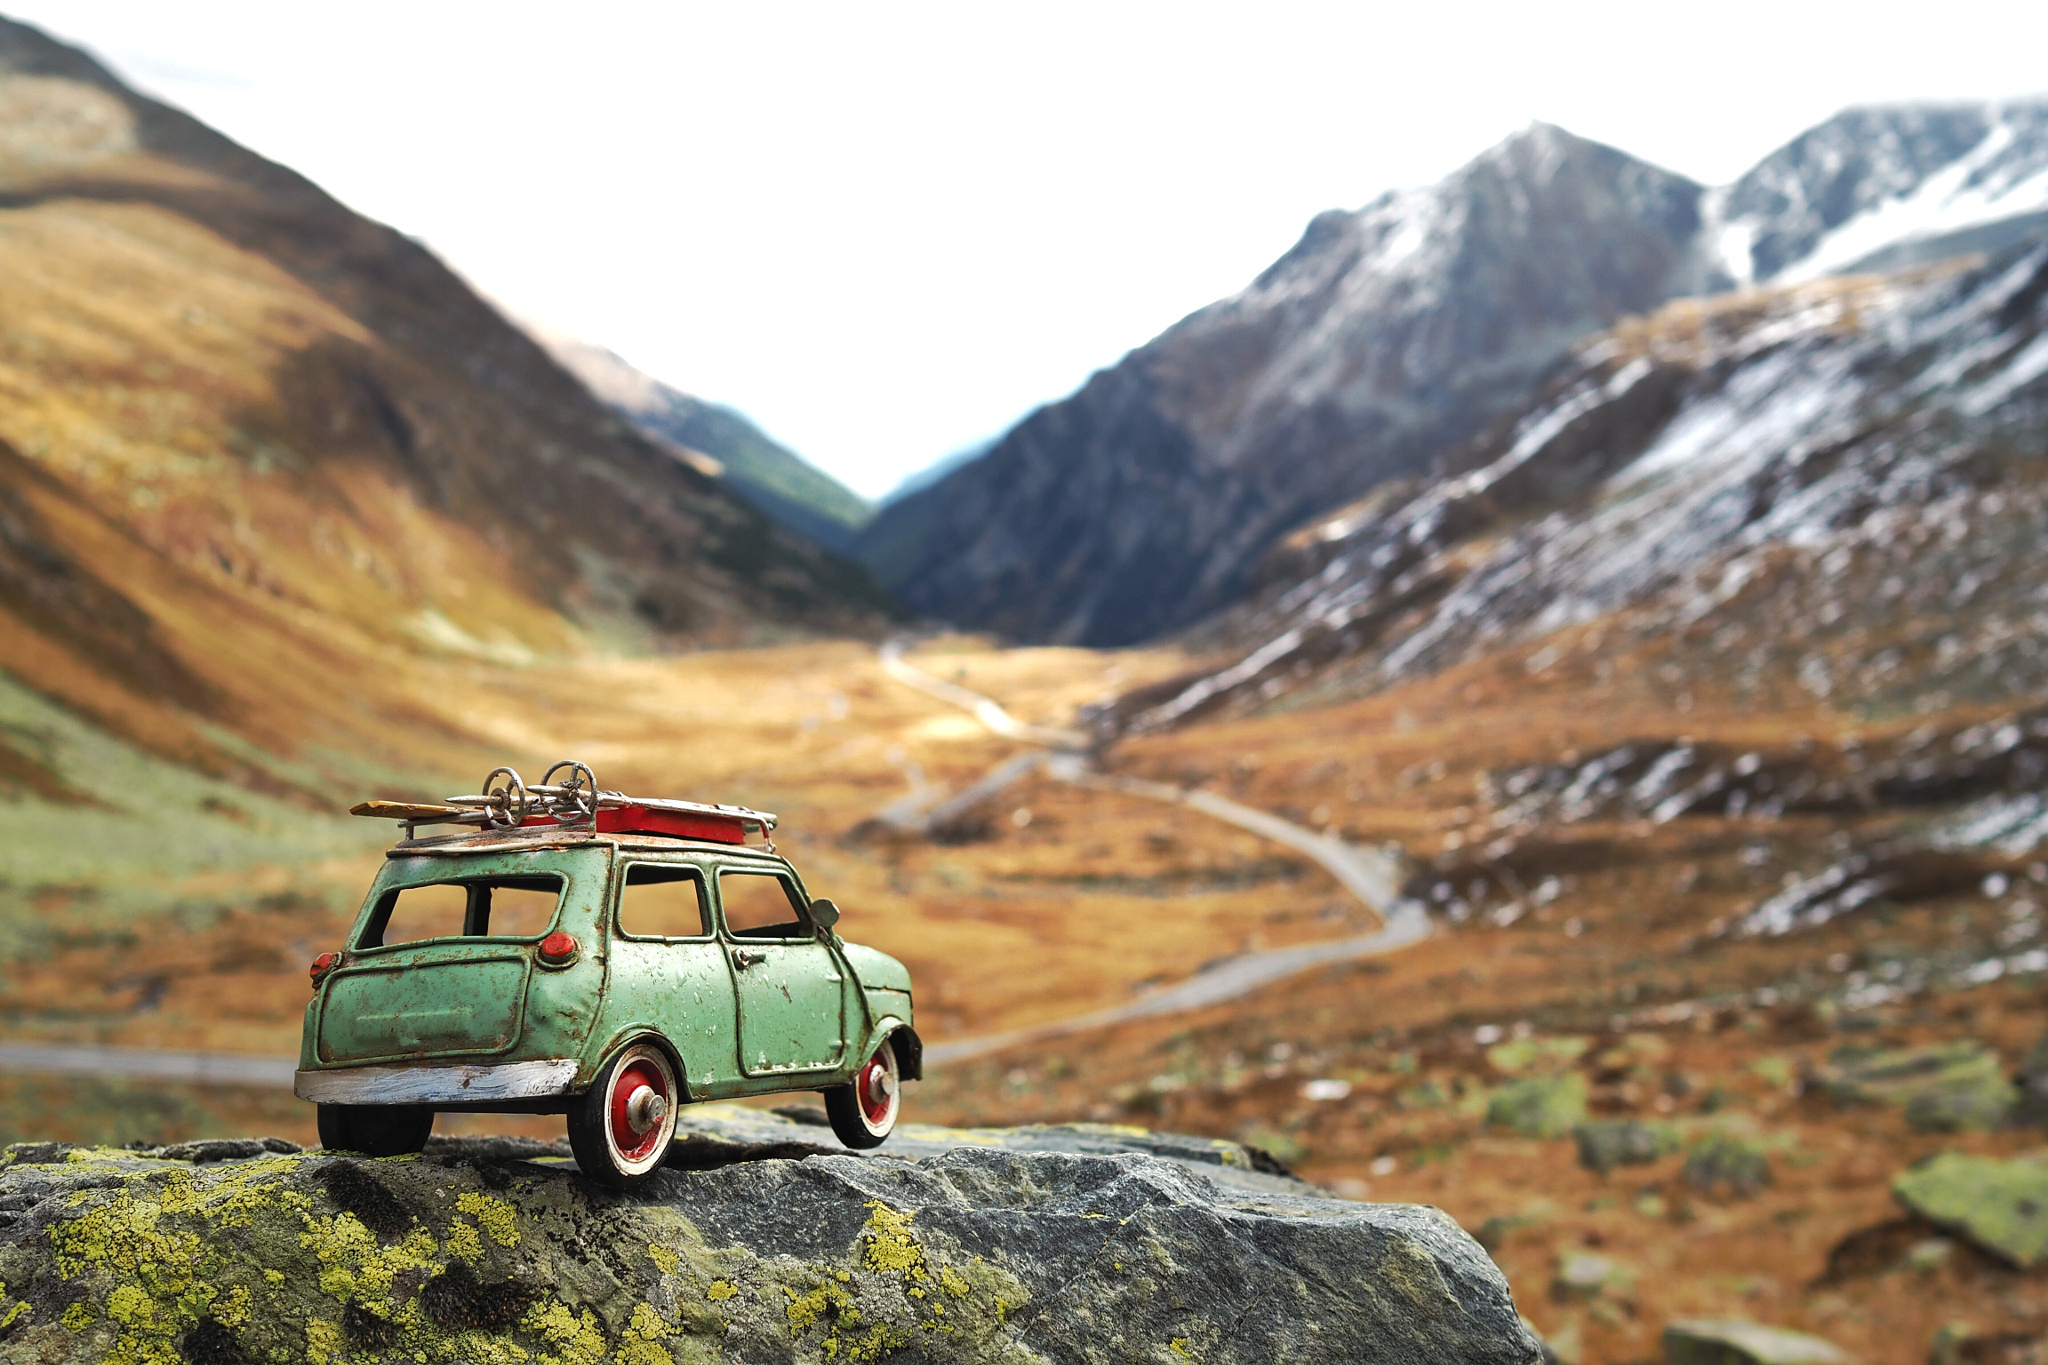 Exploring the World with Kim Leuenberger and Her Tiny Cars